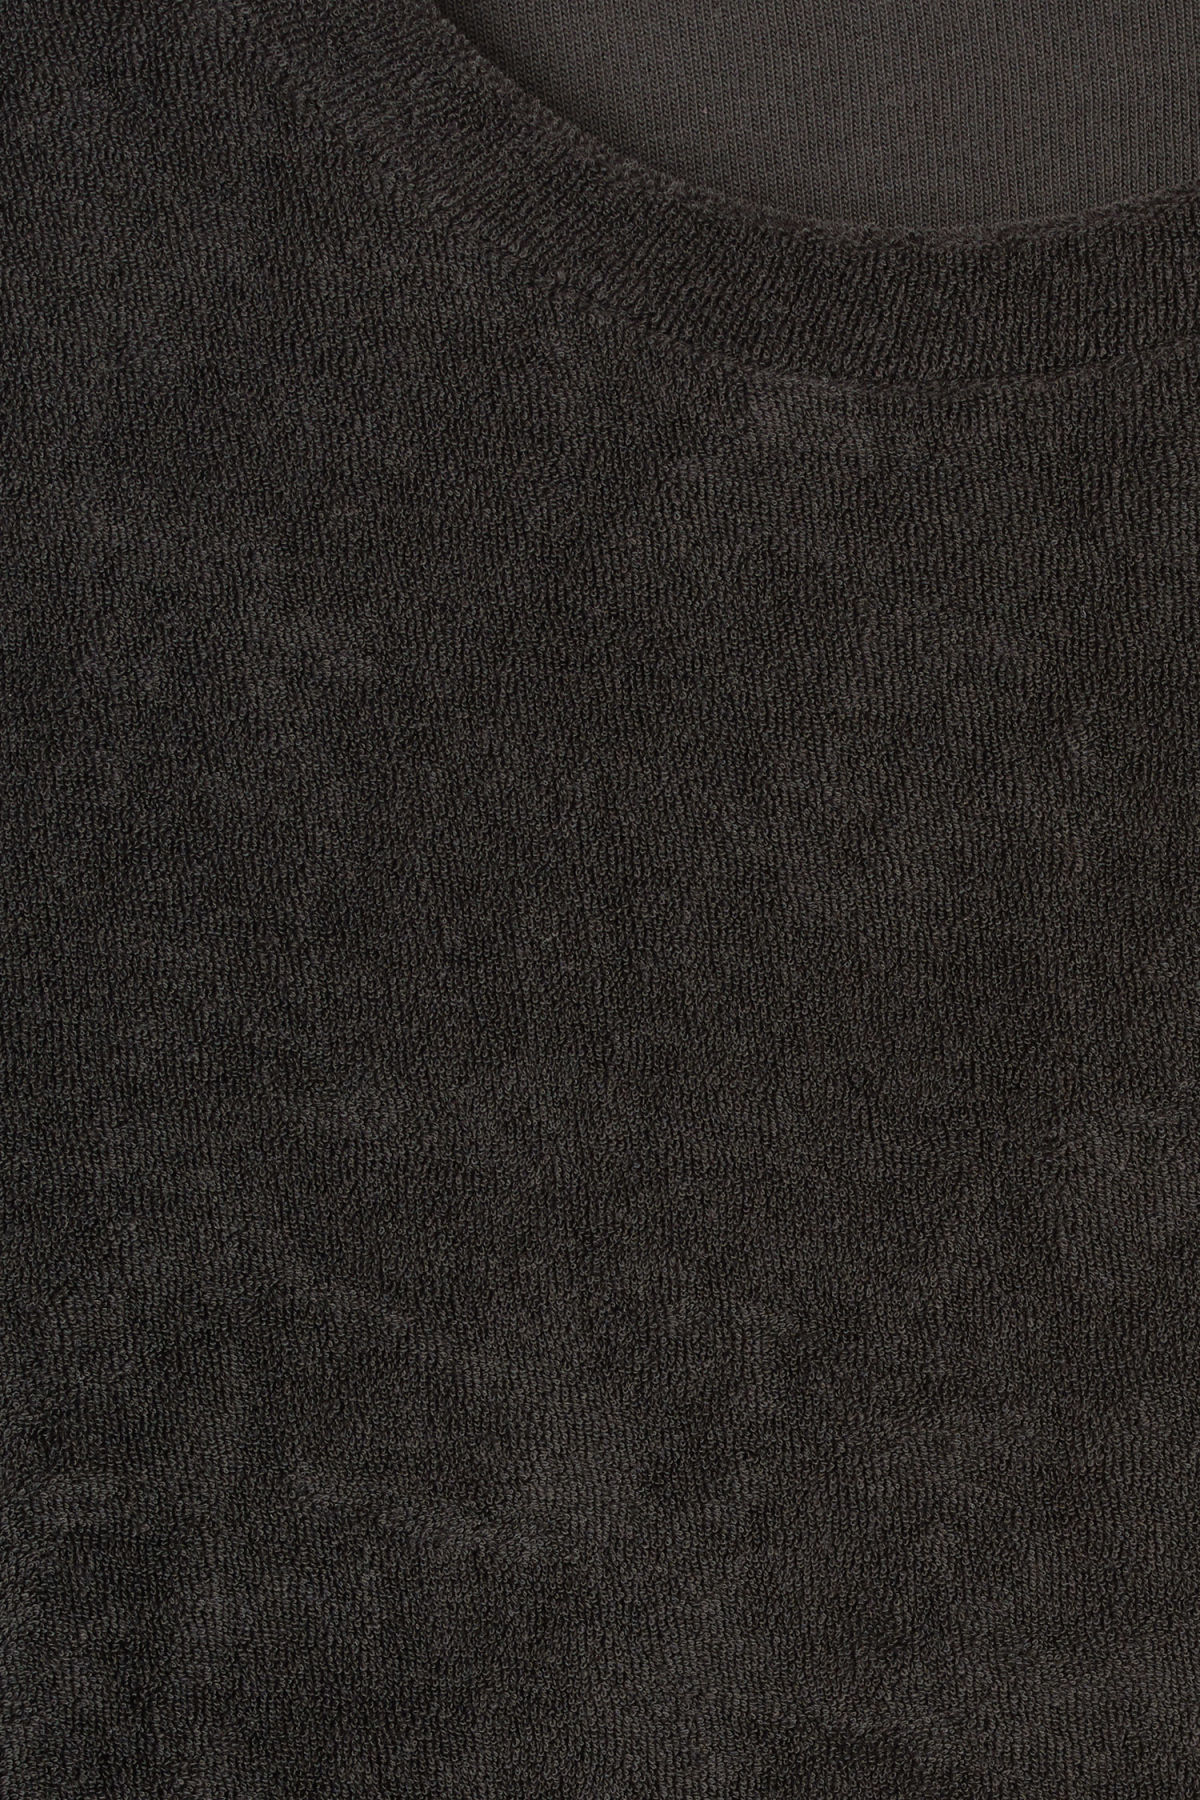 Detailed image of Weekday towel long sleeve in black